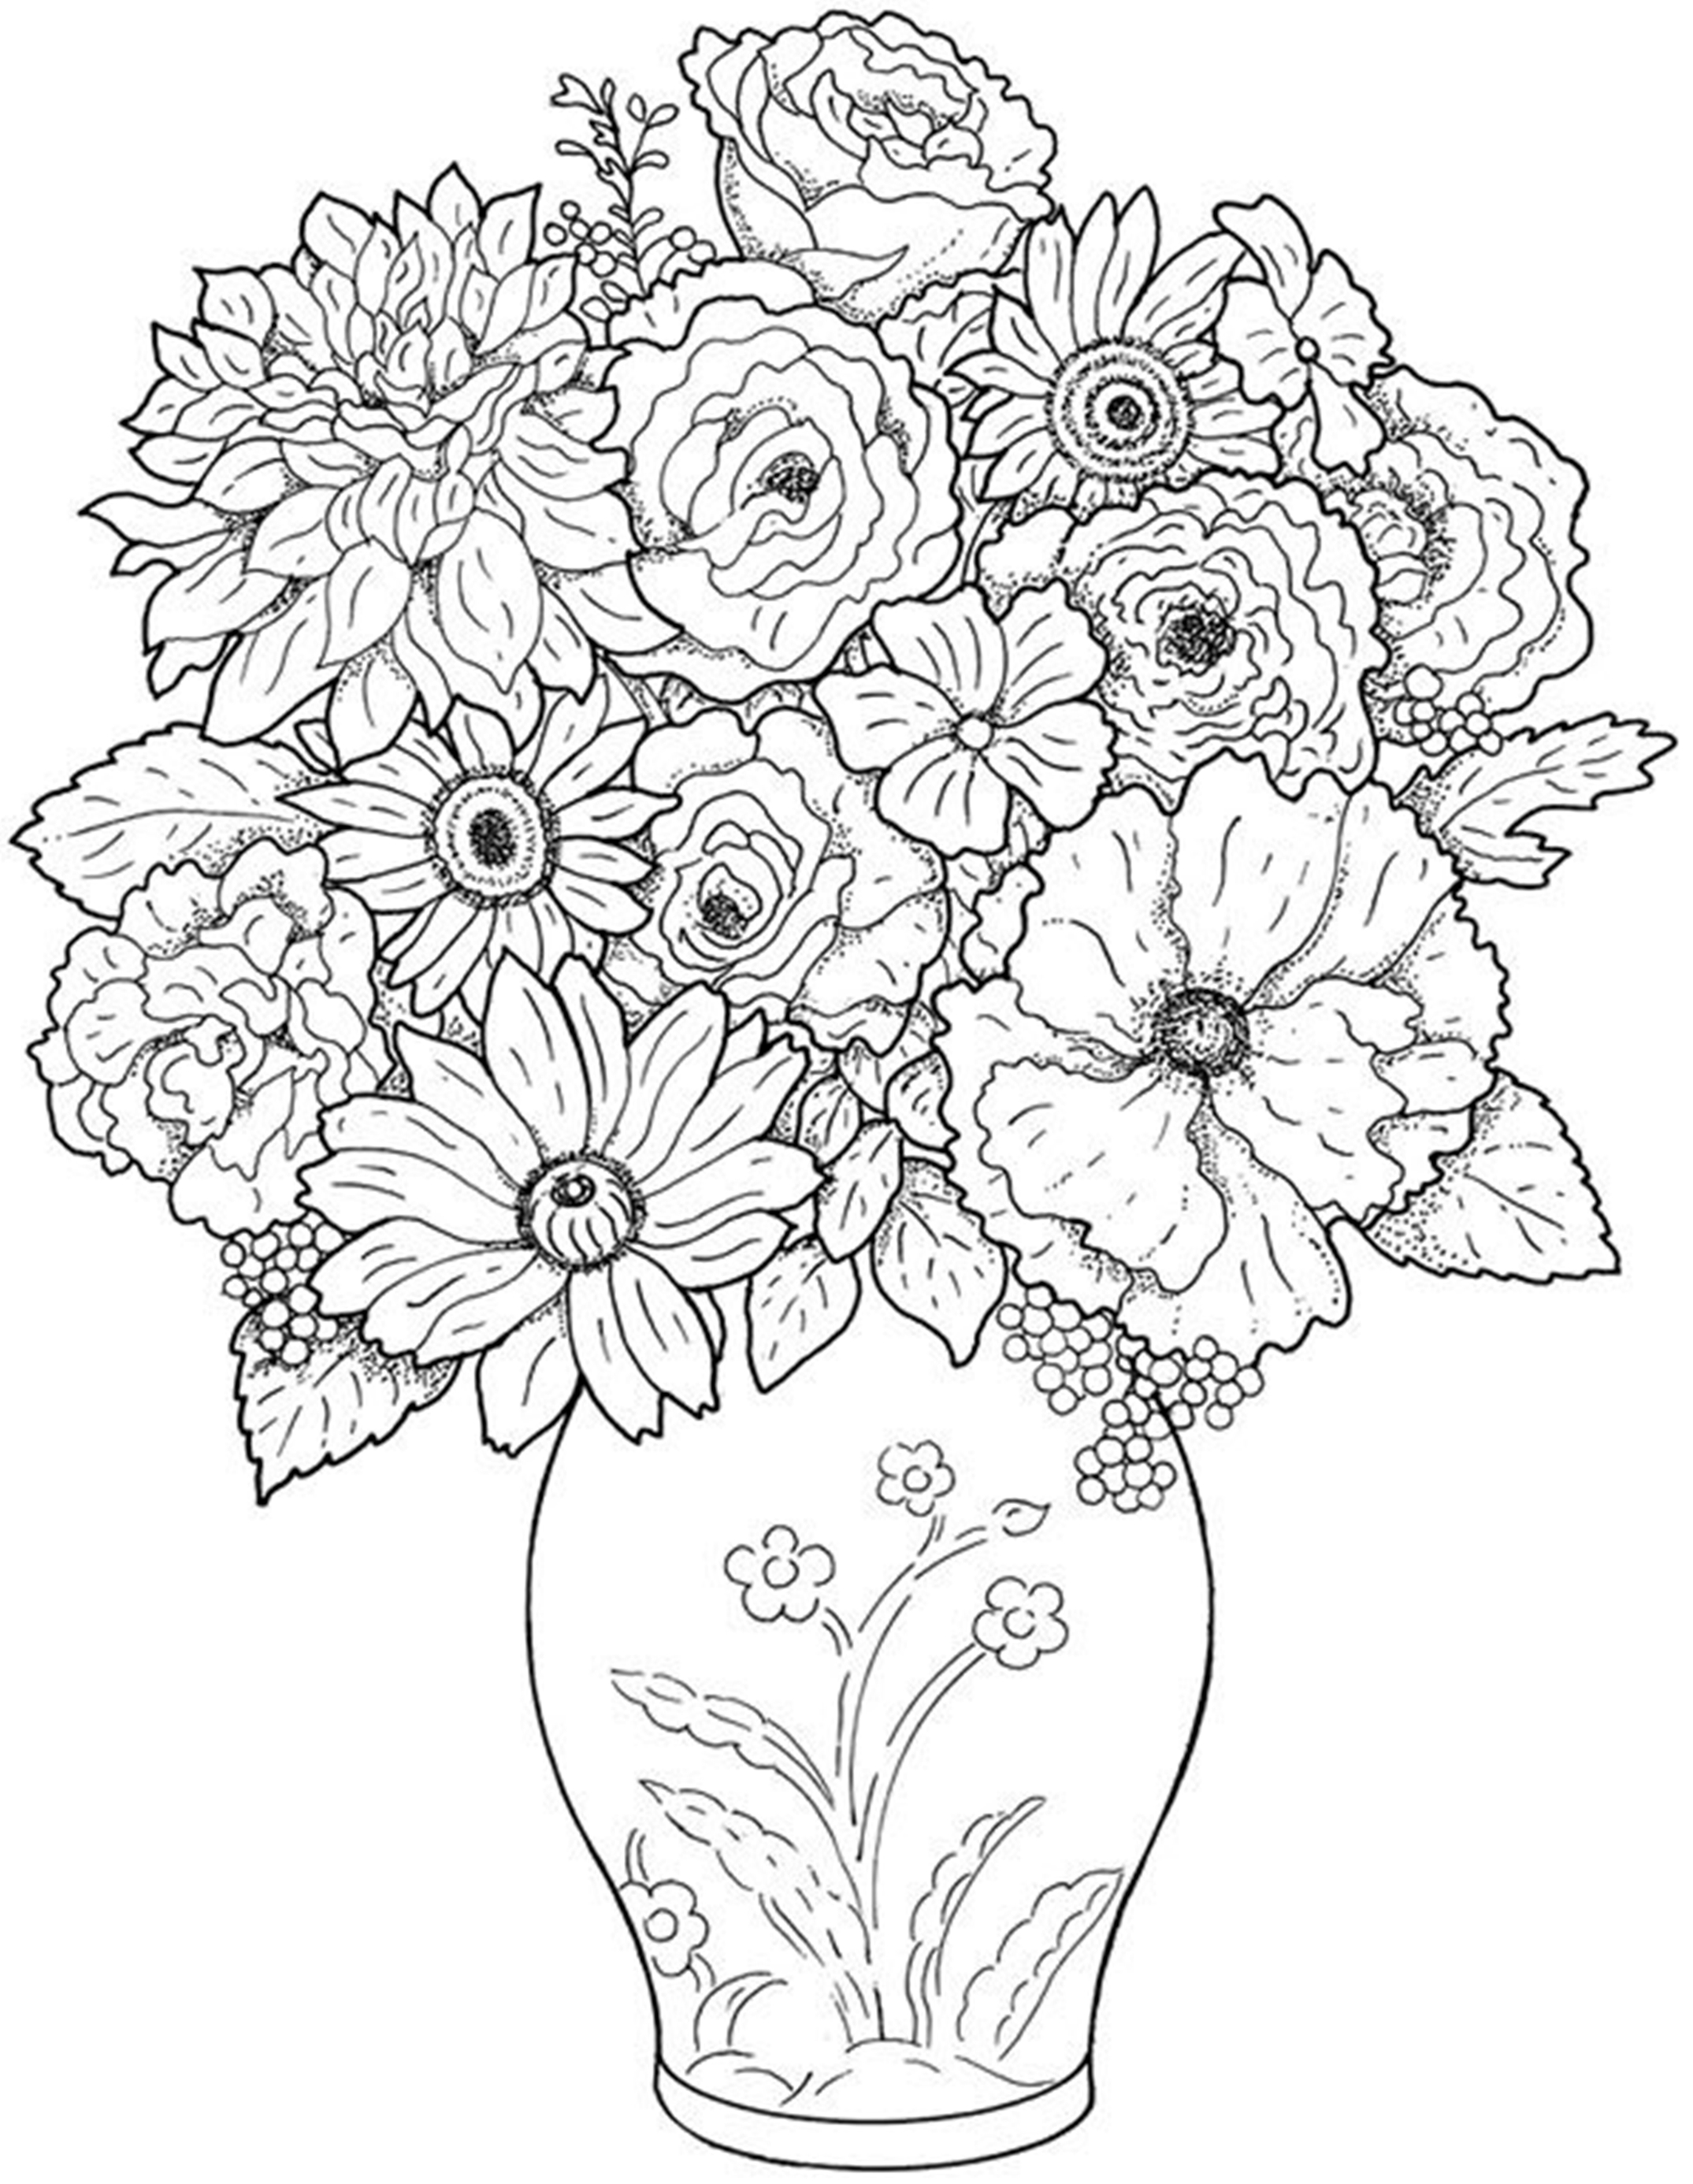 flower colouring pictures to print 2 flower mandala printable coloring page to colouring pictures print flower